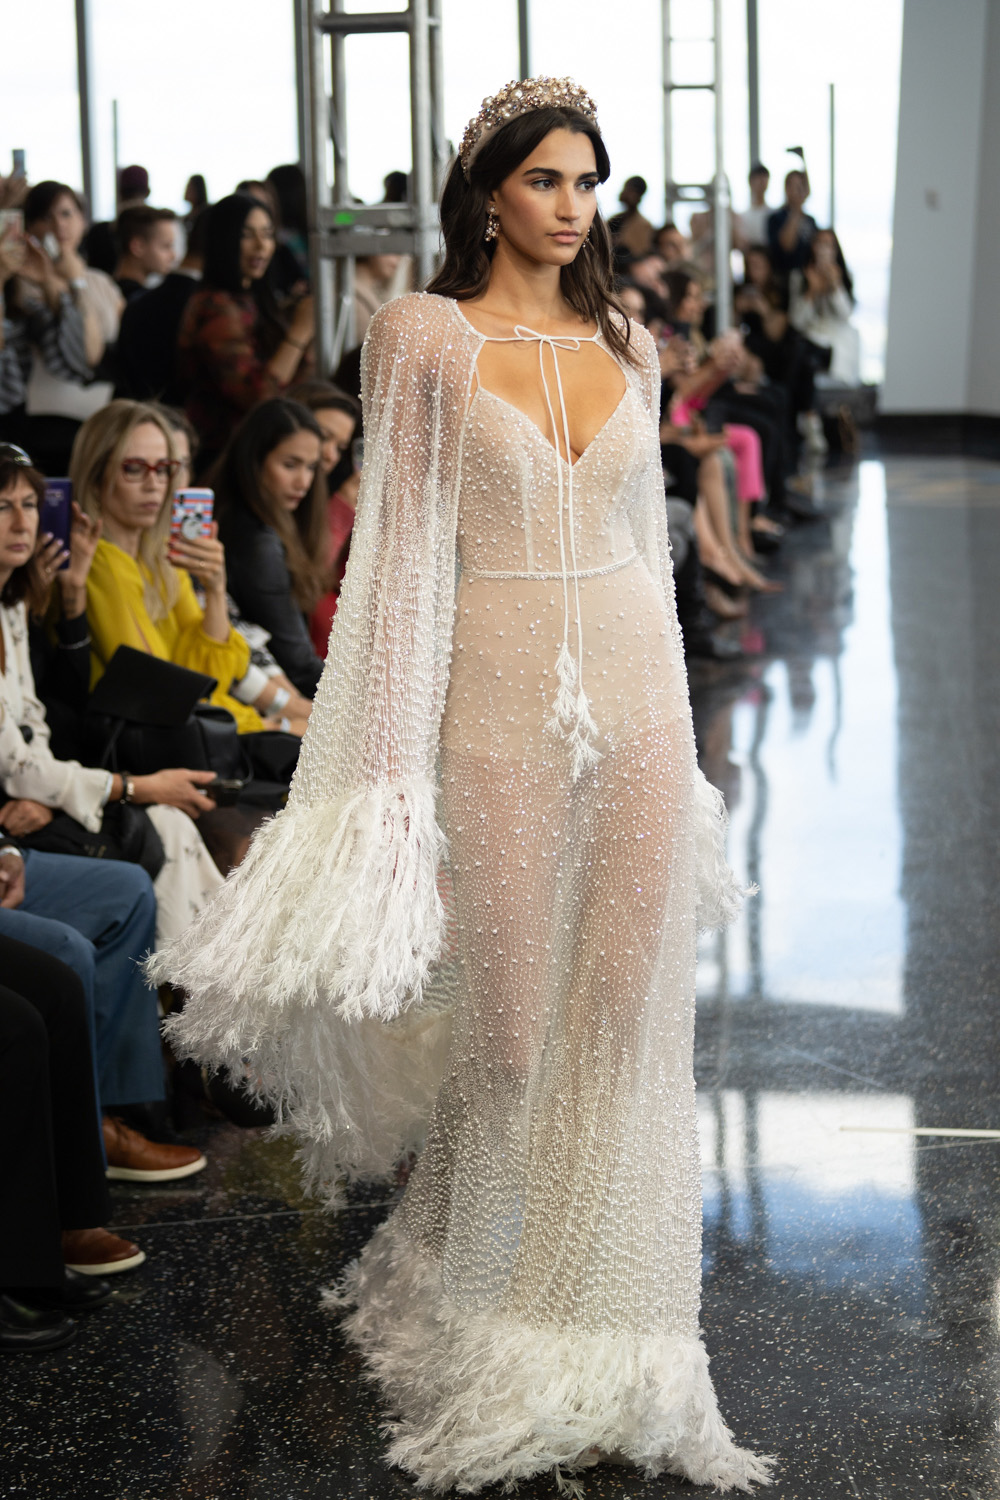 Berta Wedding Dress with Fringe and Cape